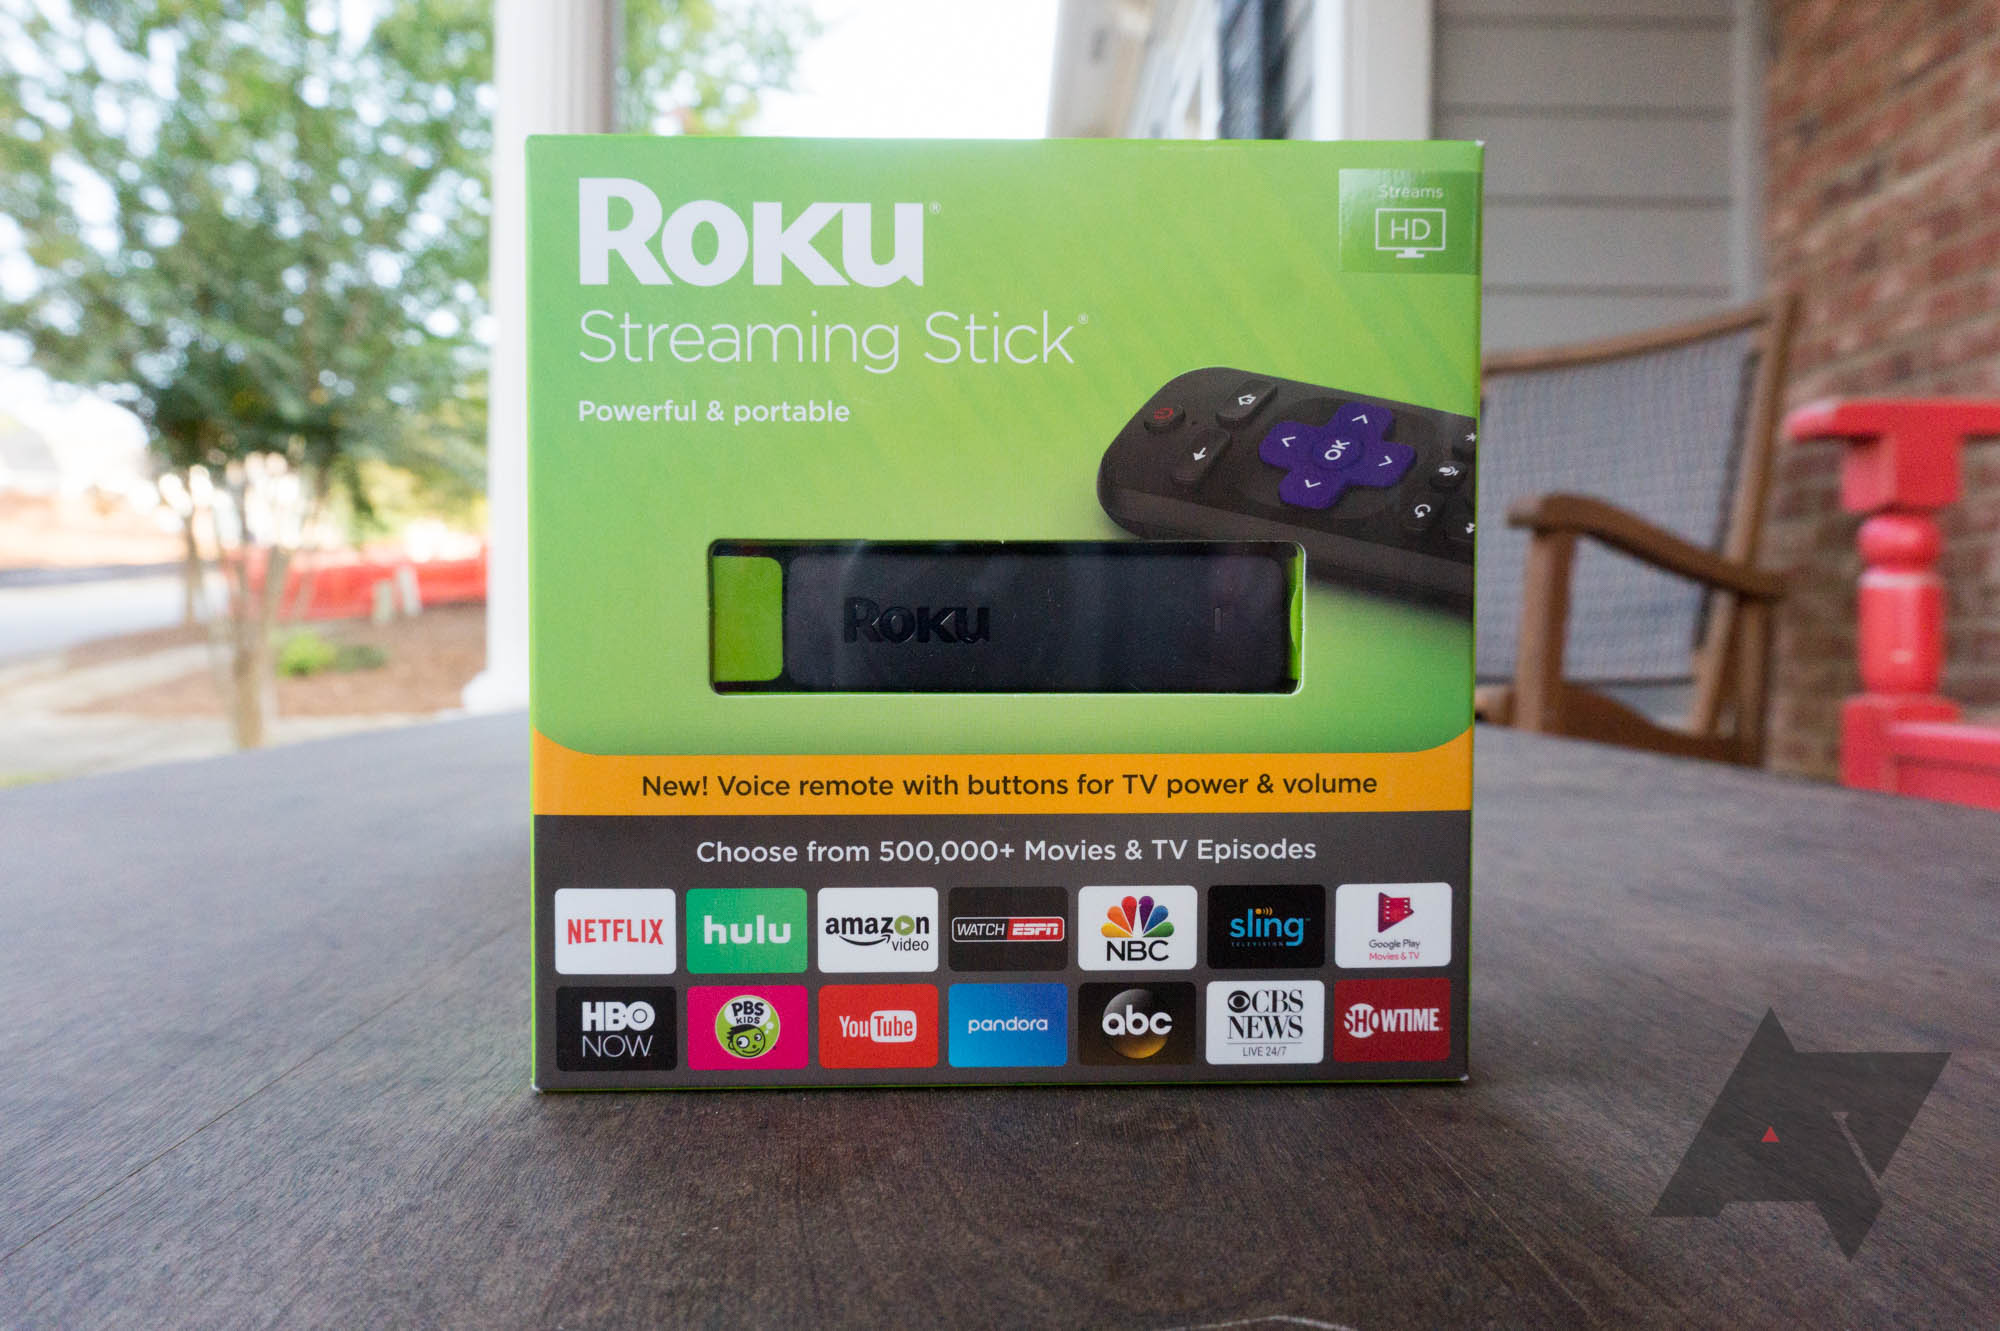 Roku Streaming Stick & Stick+ review: A great pair of Chromecast